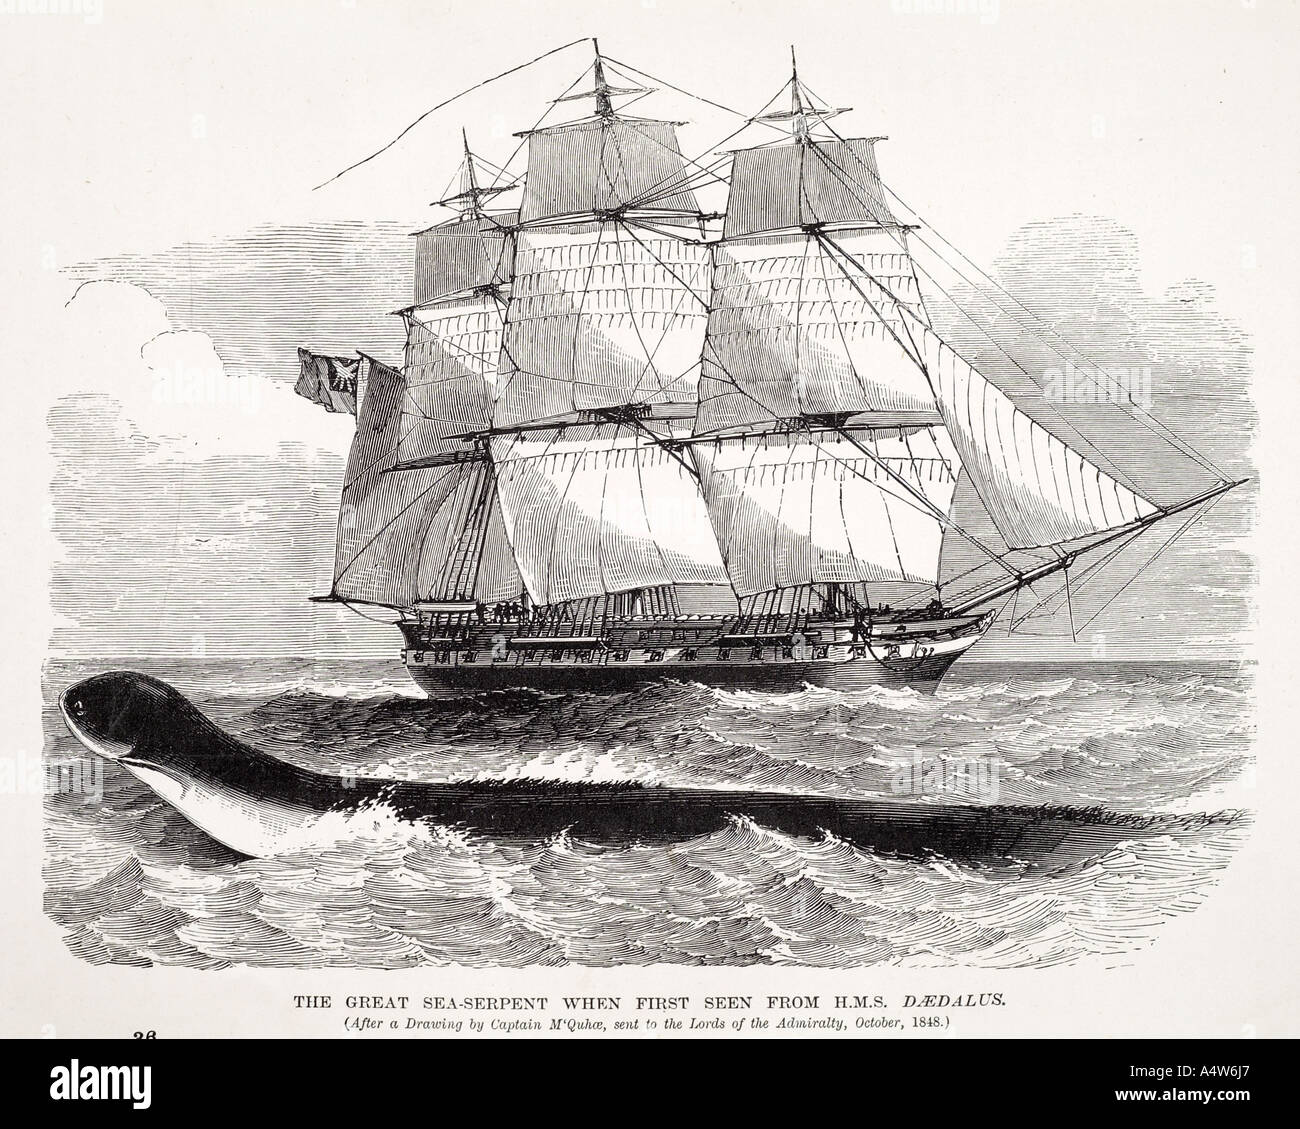 sea serpent myth legend mammal animal snake monster folklore marine nautical sail boat ship creature imagination extinct enalios - Stock Image